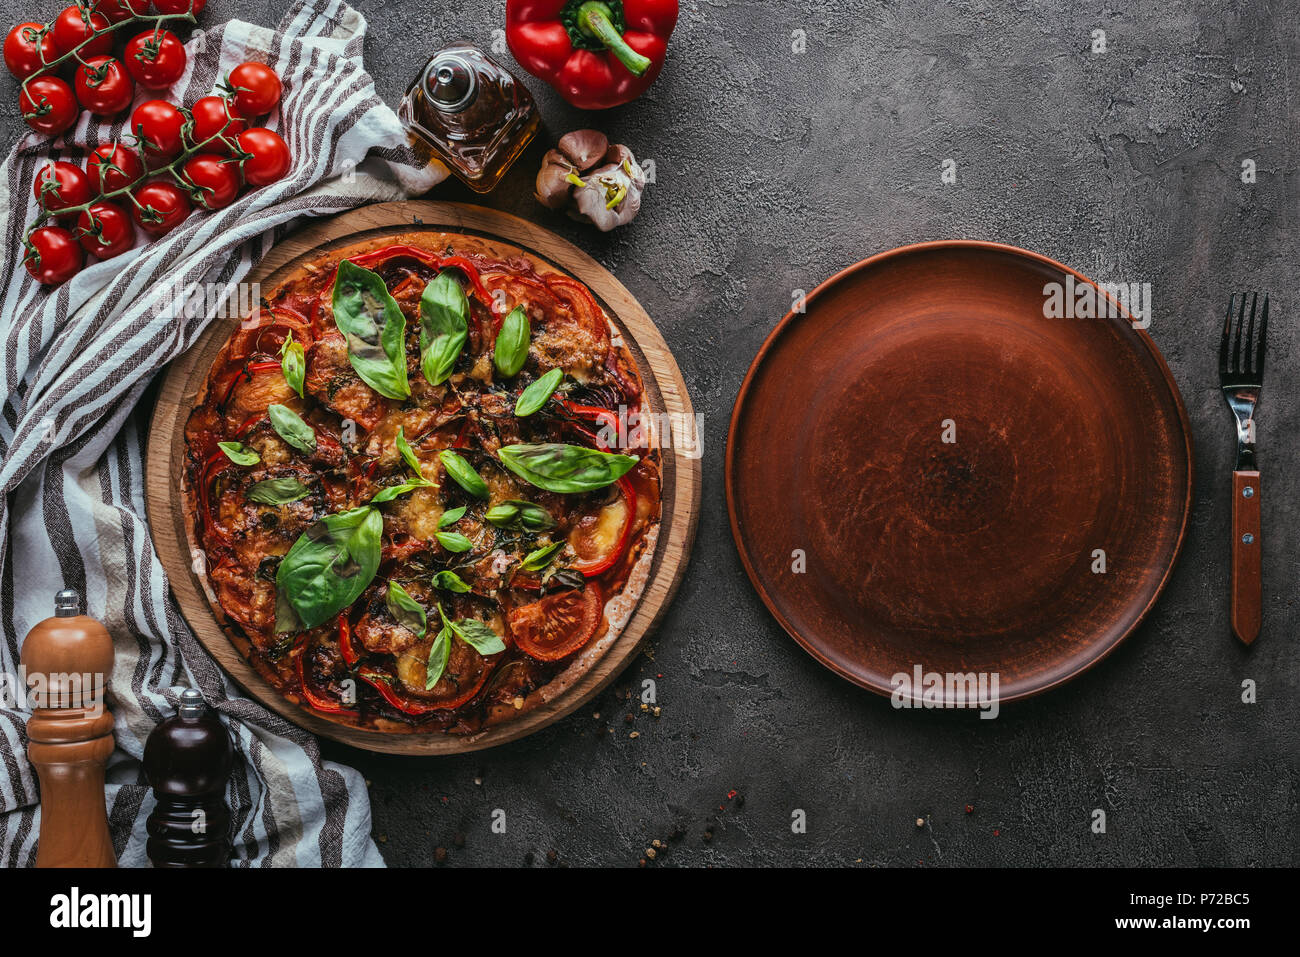 top view of delicious pizza with rustic plate on concrete table - Stock Image